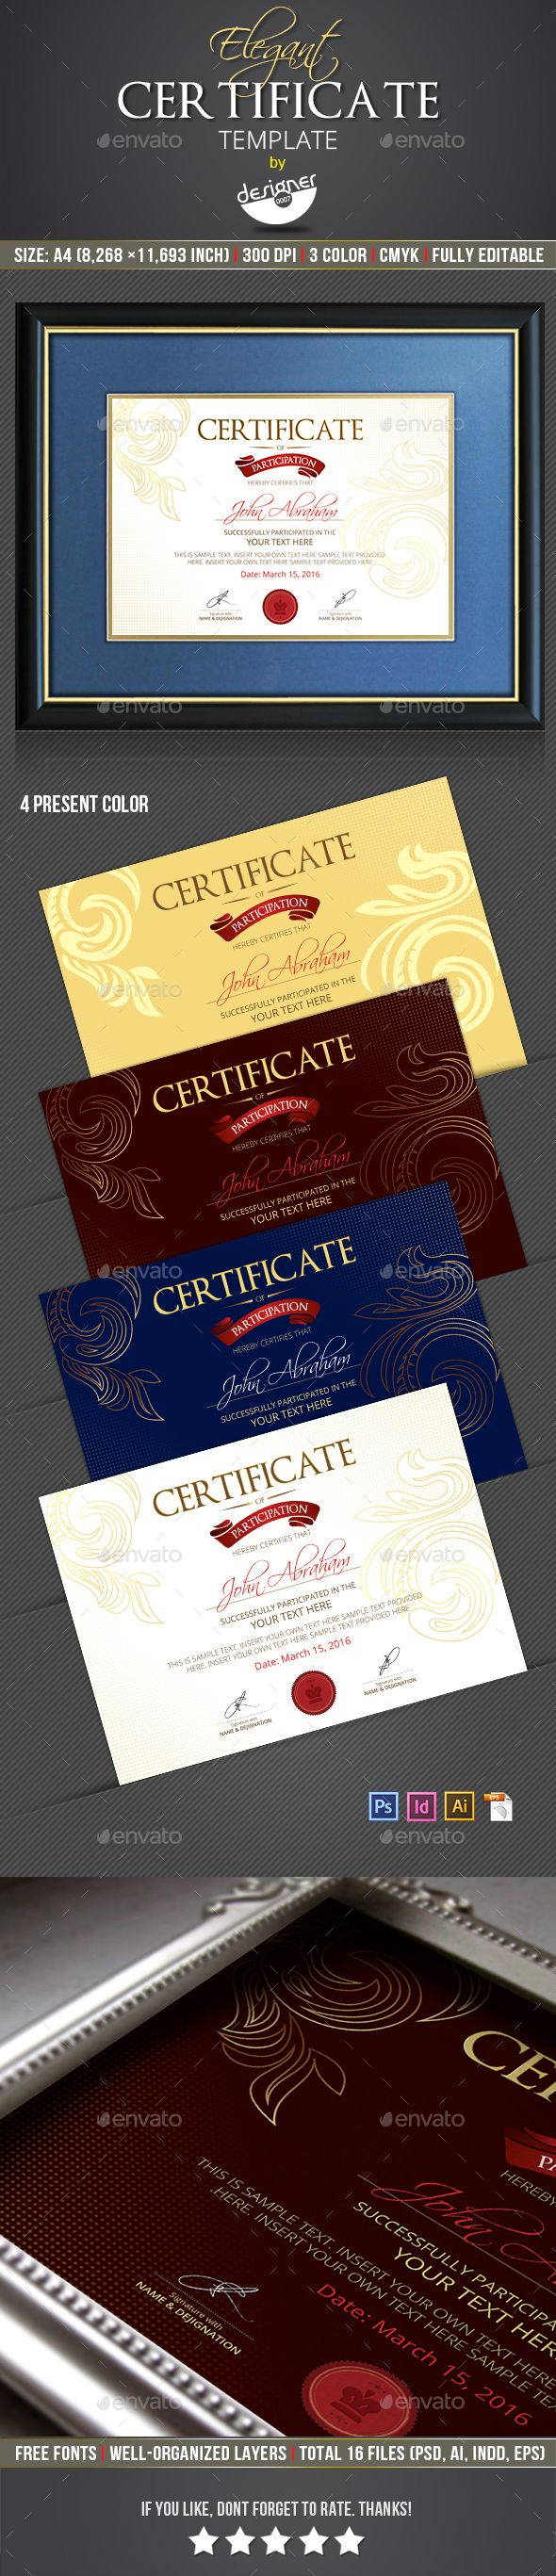 Elegant Certificate Template - Certificates Stationery Template PSD, InDesign INDD, Vector EPS, AI Illustrator. Download here: http://graphicriver.net/item/elegant-certificate-template/16816391?ref=yinkira